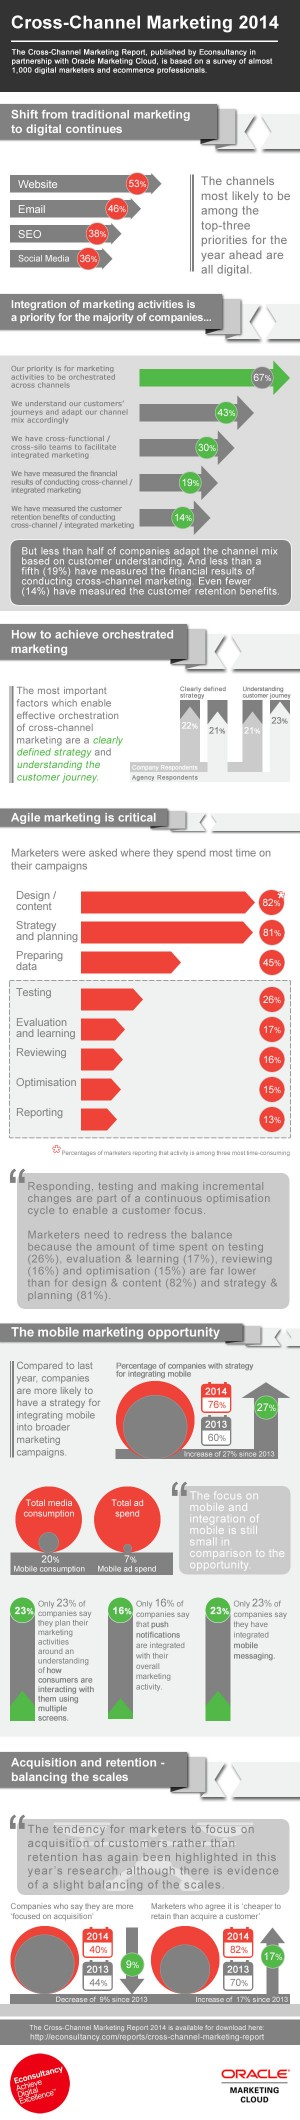 marketing-digital-cross-canal-2014-infographic-econsultancy